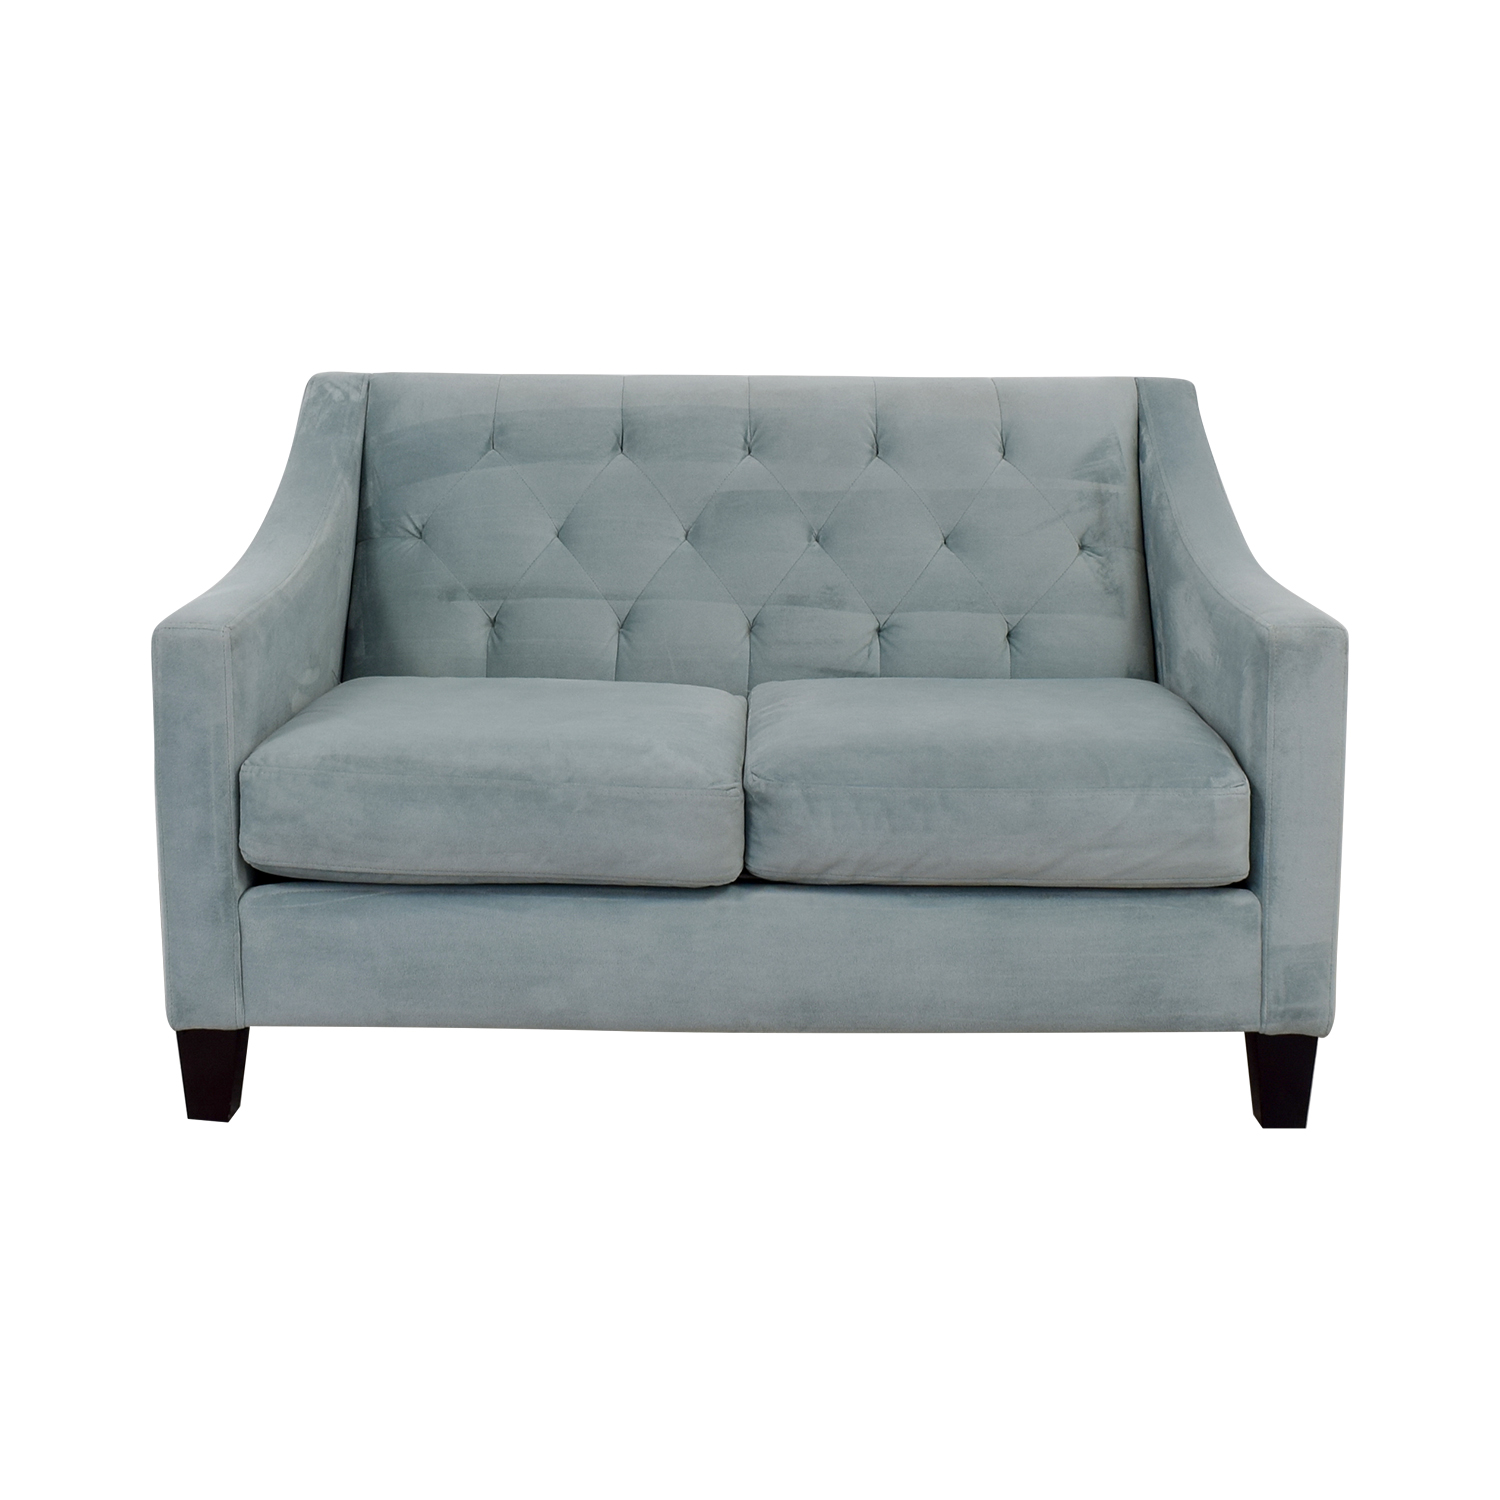 Max Home Max Home Baby Blue Tufted Two-Cushion Loveseat price